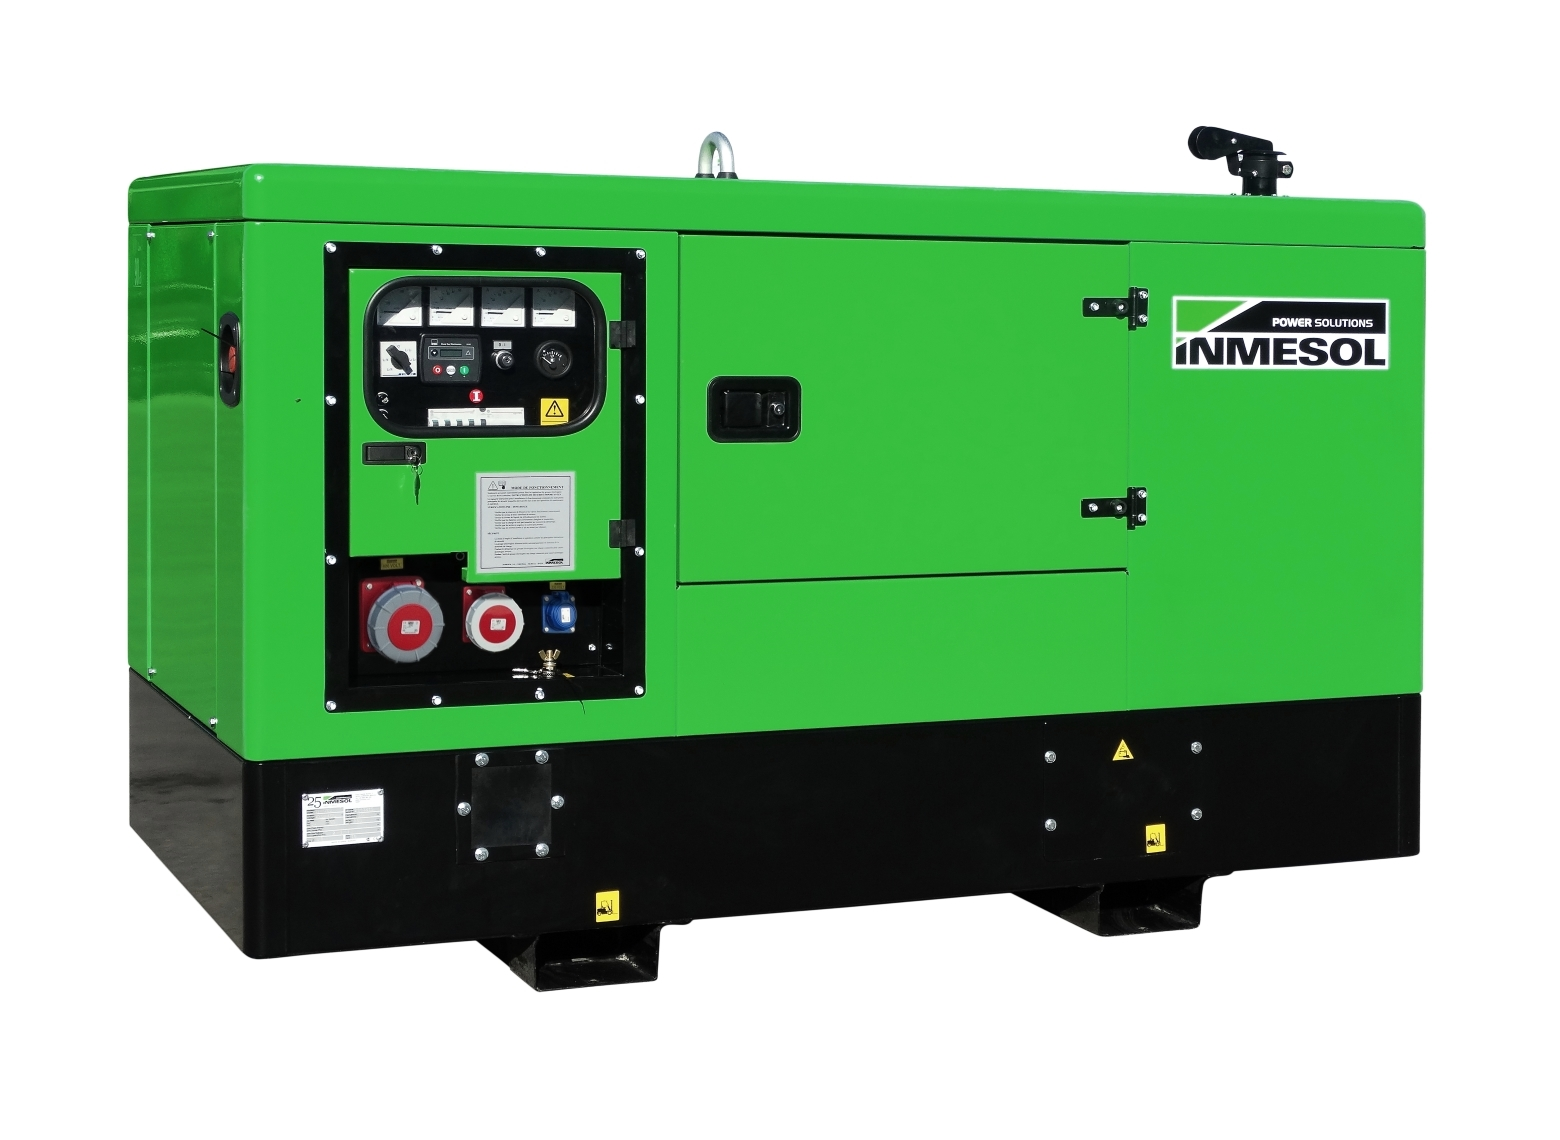 Generator with manual control panel.IK-18 - KOHLER - KDI1903M - 1.500 R.P.M. | 50 Hz